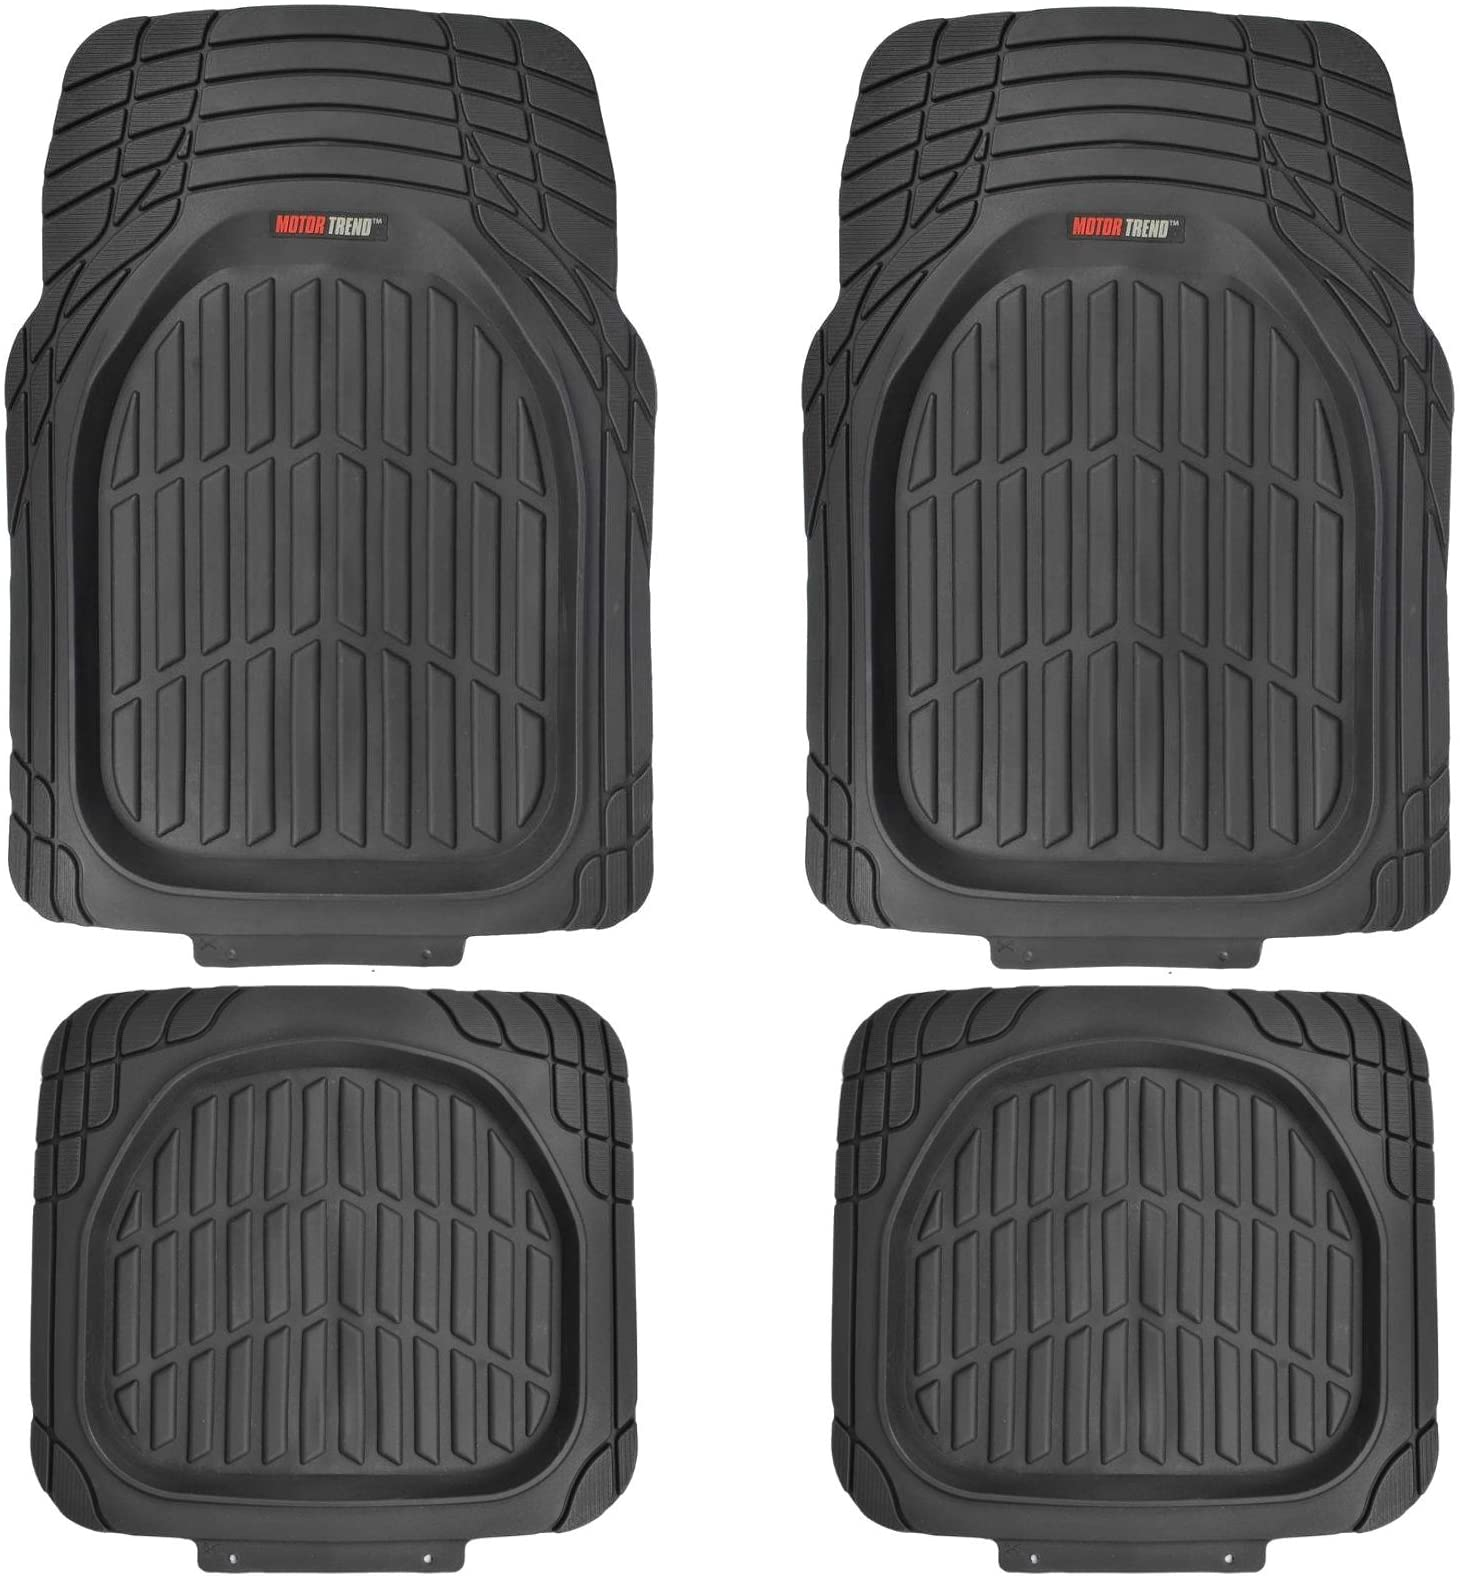 Motor Trend FlexTough Tortoise - Heavy Duty Rubber Floor Mats for All Weather Protection - Deep Dish (Black)